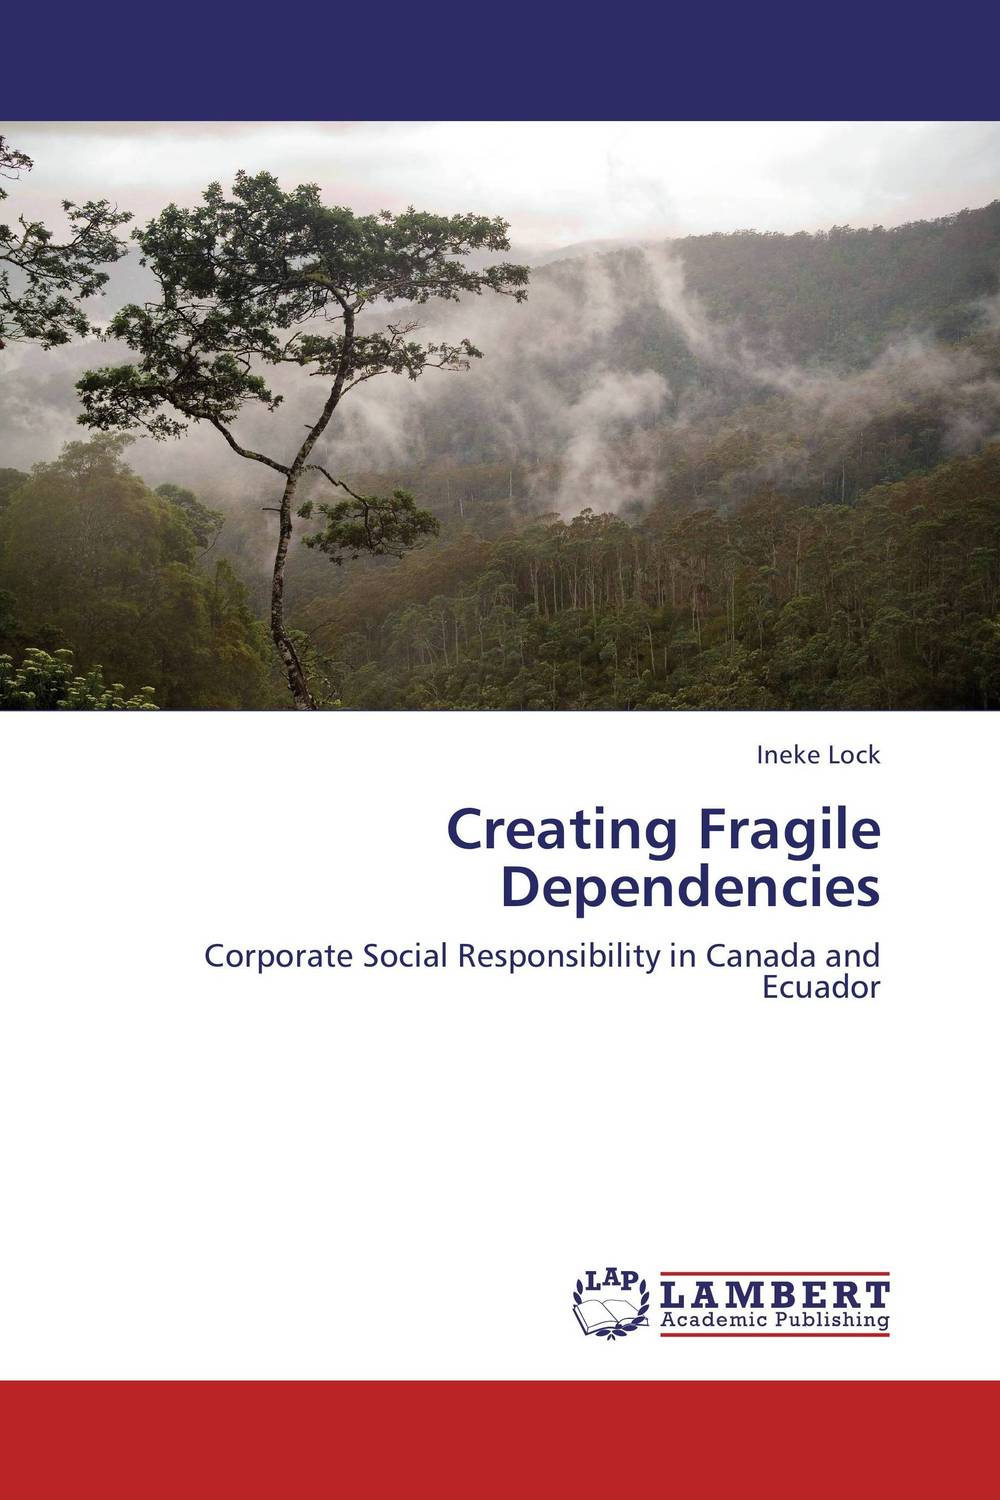 Creating Fragile Dependencies linguistic diversity and social justice